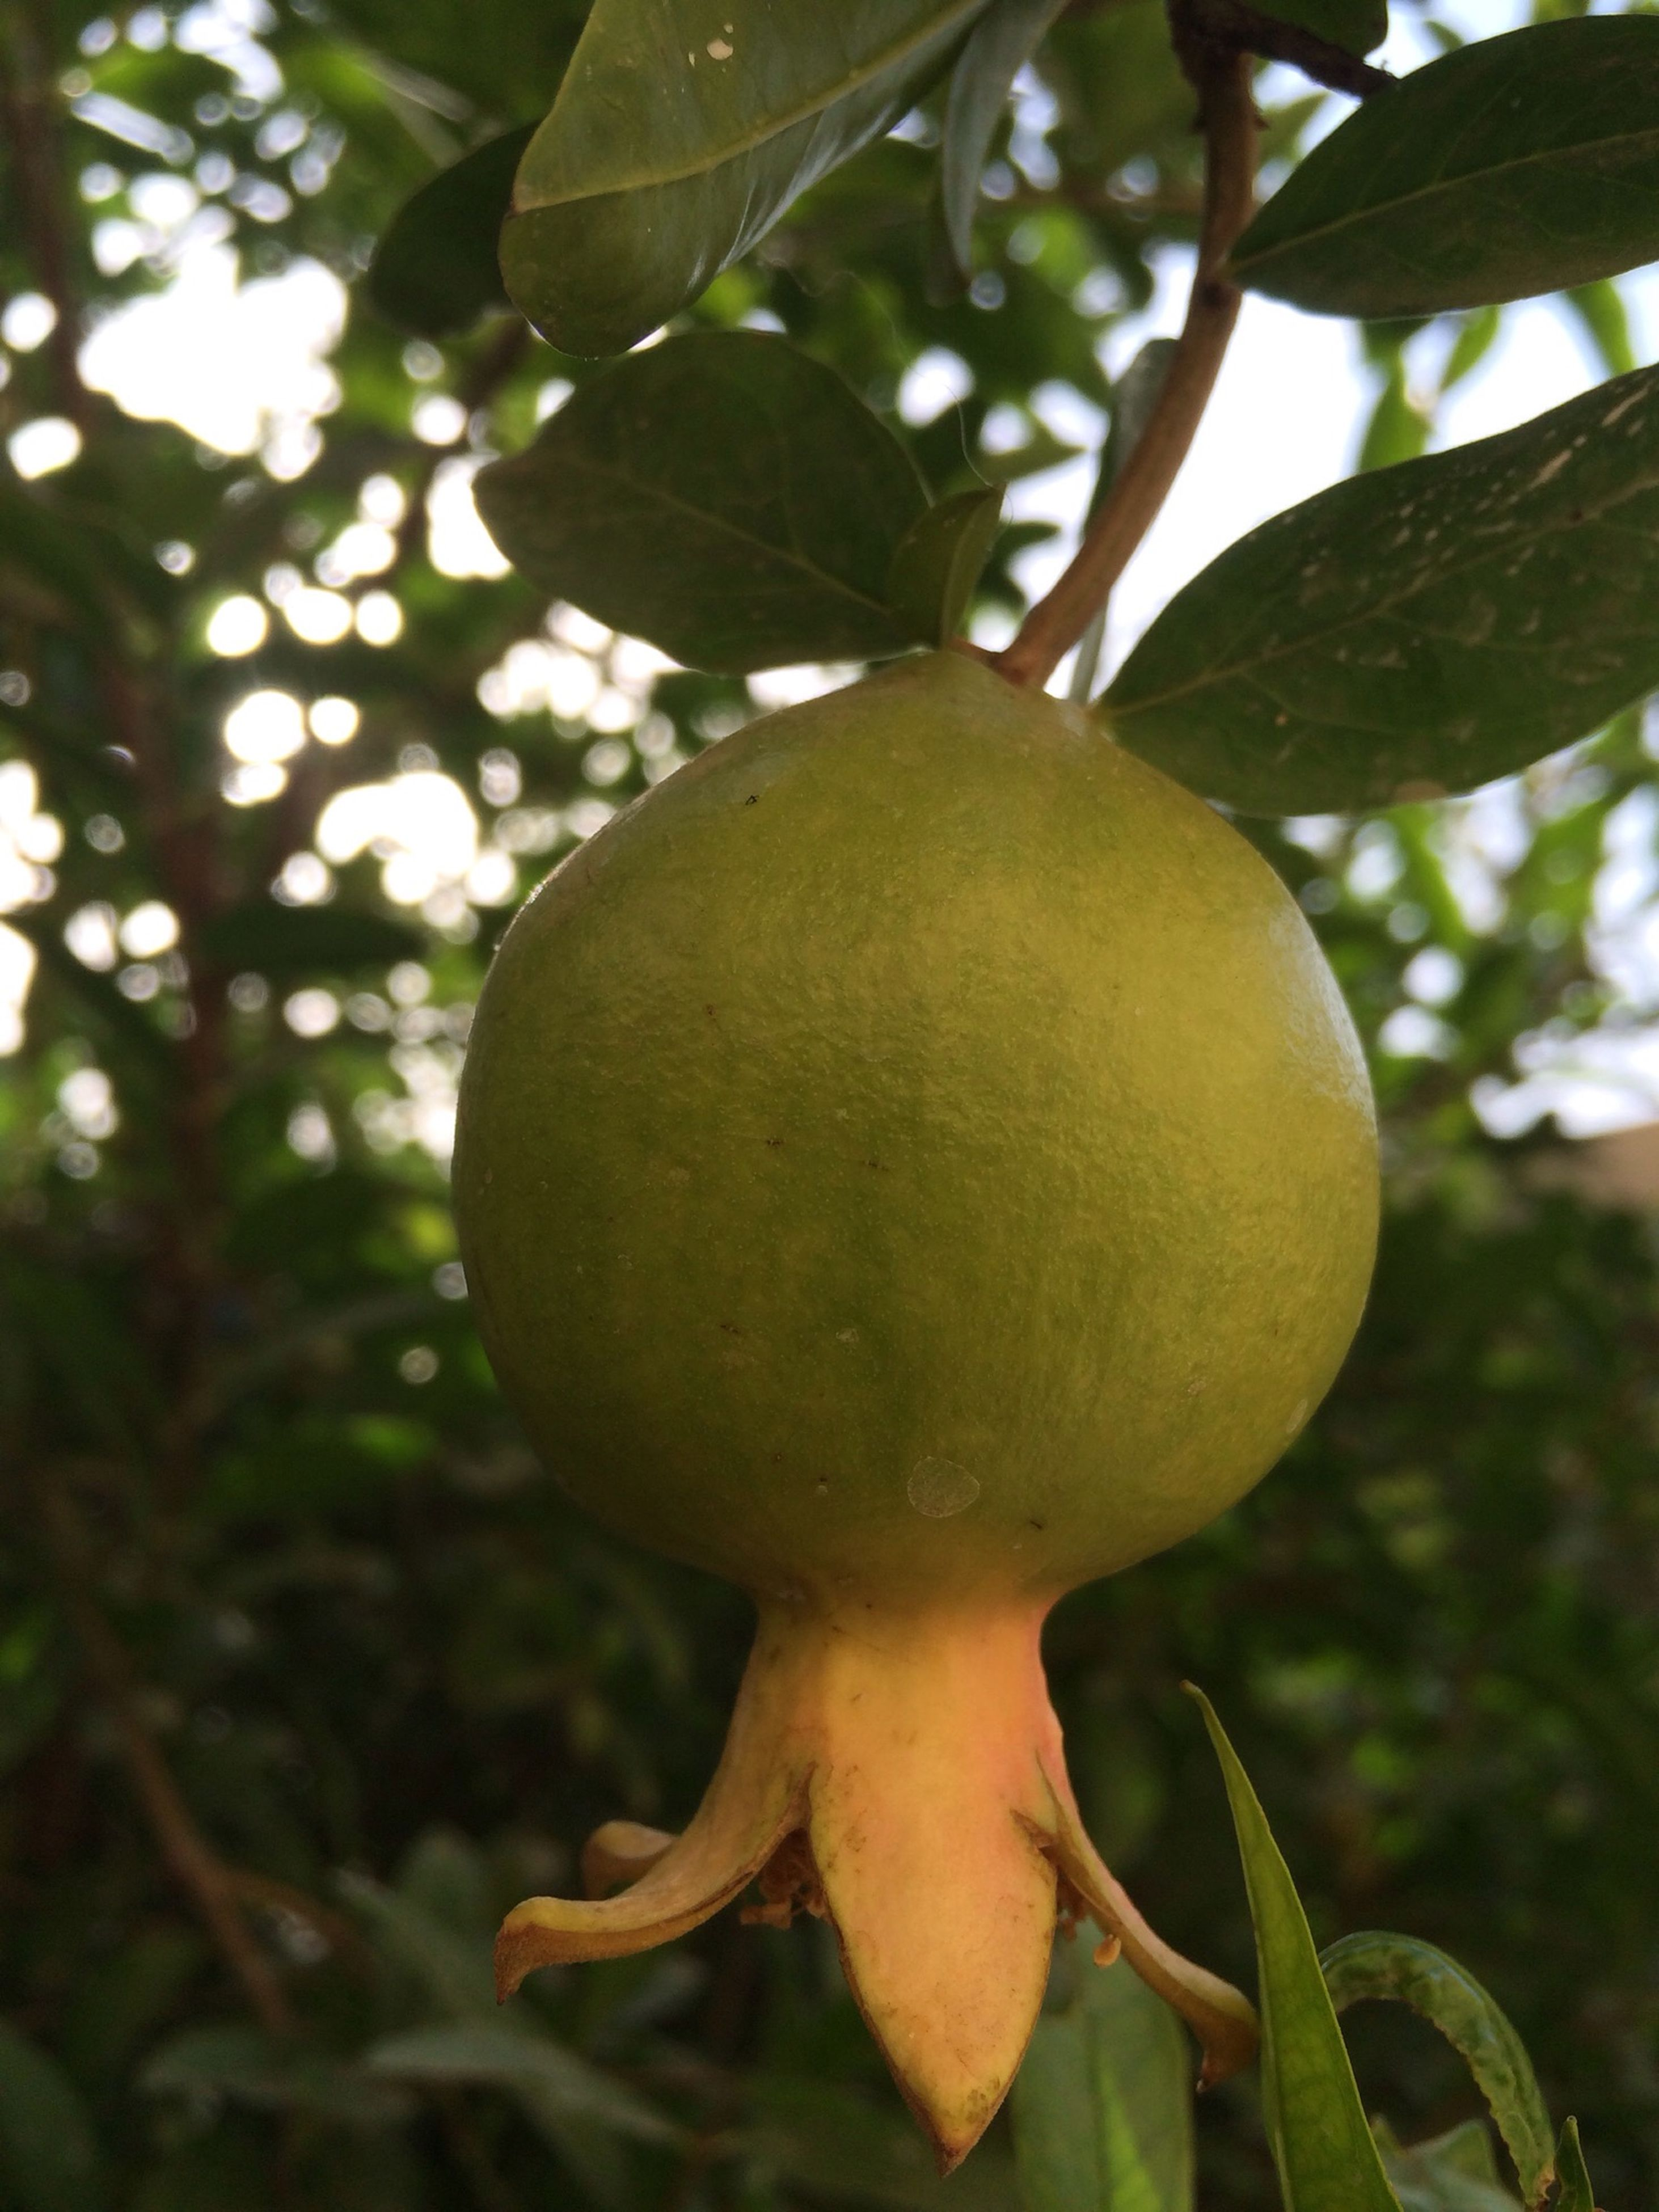 food and drink, fruit, tree, leaf, growth, food, freshness, healthy eating, branch, close-up, focus on foreground, green color, hanging, nature, ripe, apple tree, apple - fruit, low angle view, growing, day